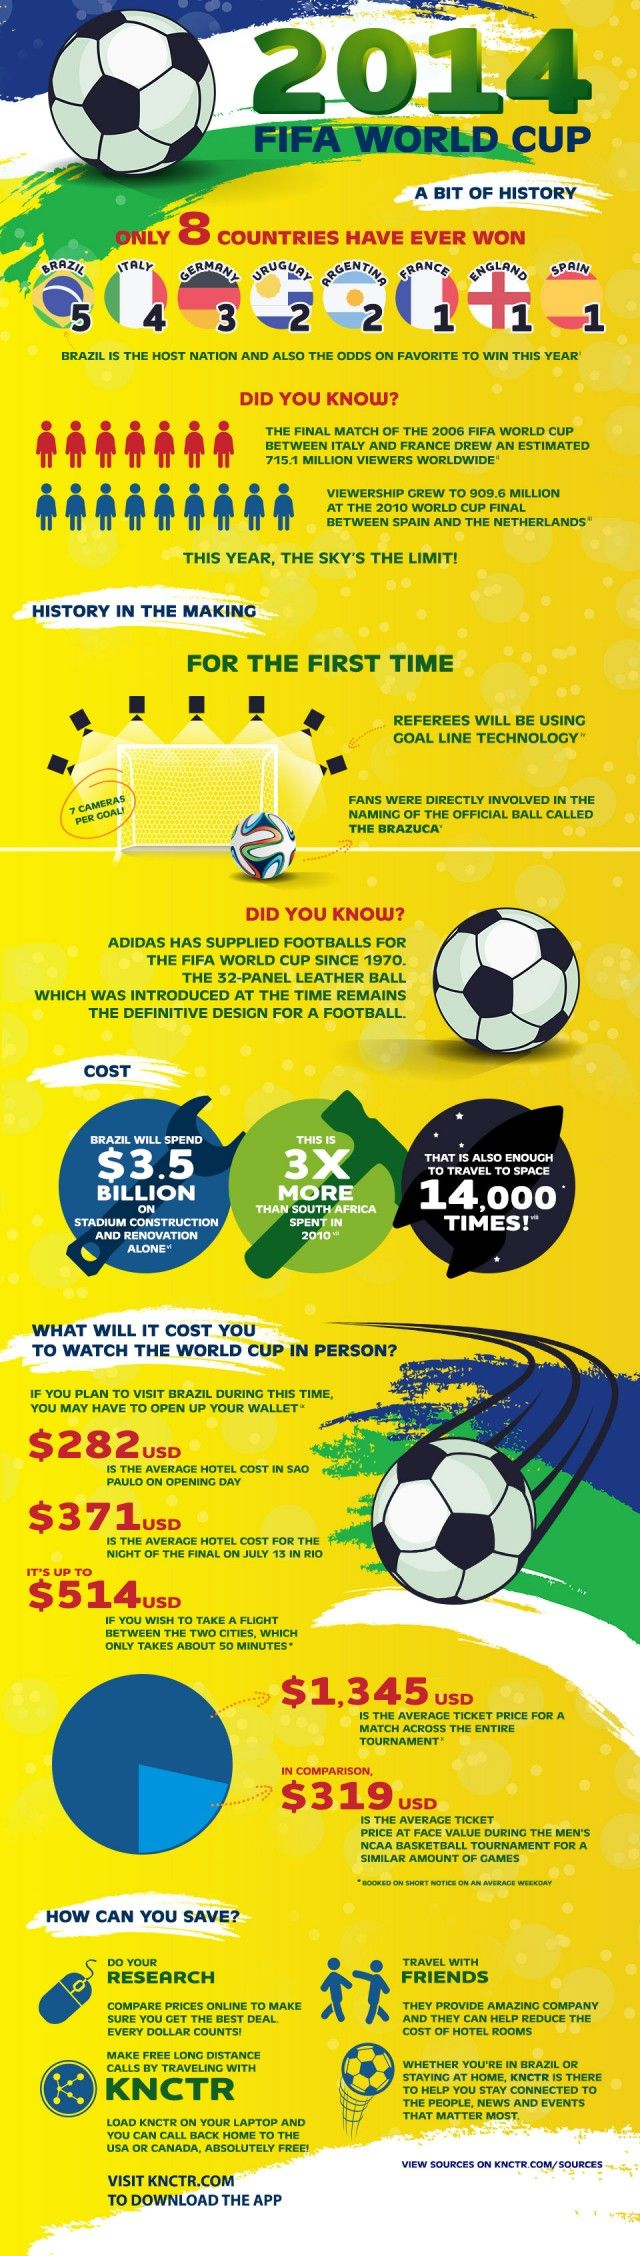 Great stats and info about the World Cup in this great infographic from dailyinfographic.com #WorldCup #soccer #infographic